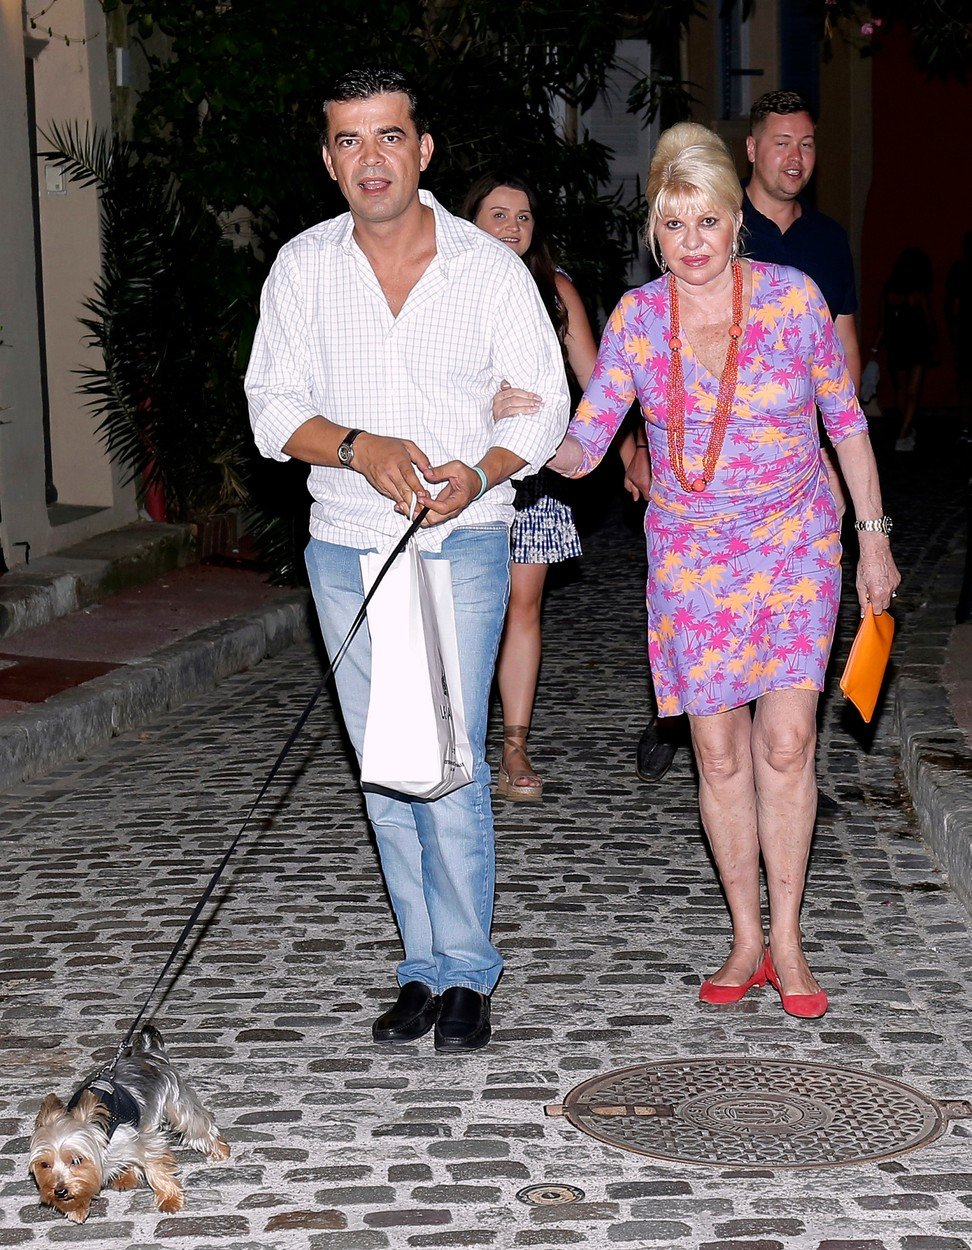 August 17th, 2018 - Saint Tropez  ****** Exclusive ******          A very colorfull Ivana Trump enjoying a romantic night out with a mysterious man in Saint Tropez.  ****** BYLINE MUST READ : © Spread Pictures ******  ****** Please hide the children's faces prior to the publication ******  ****** No Web Usage before agreement ******  ****** Strictly No Mobile Phone Application or Apps use without our Prior Agreement ******  Enquiries at photo@spreadpictures.com, Image: 382999466, License: Rights-managed, Restrictions: WORLDWIDE, Model Release: no, Credit line: Profimedia, Spread Pictures